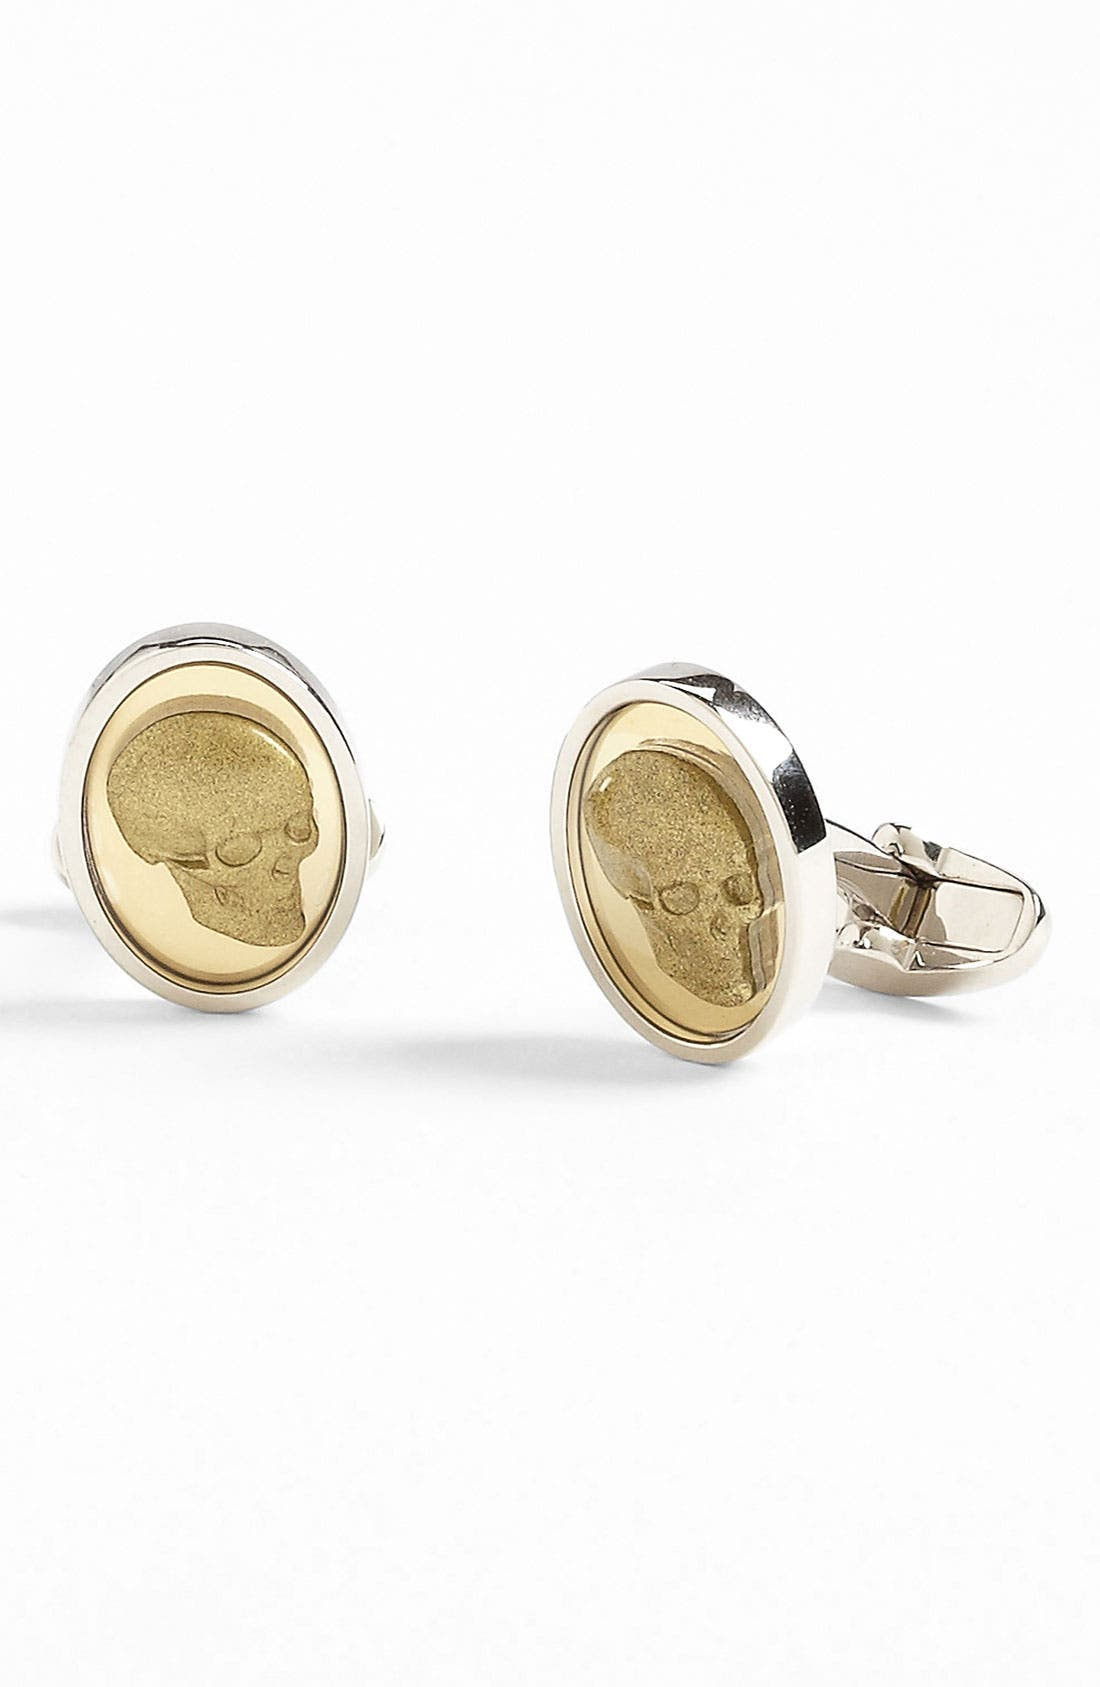 Alternate Image 1 Selected - Paul Smith Accessories 'Cameo Skull' Cuff Links